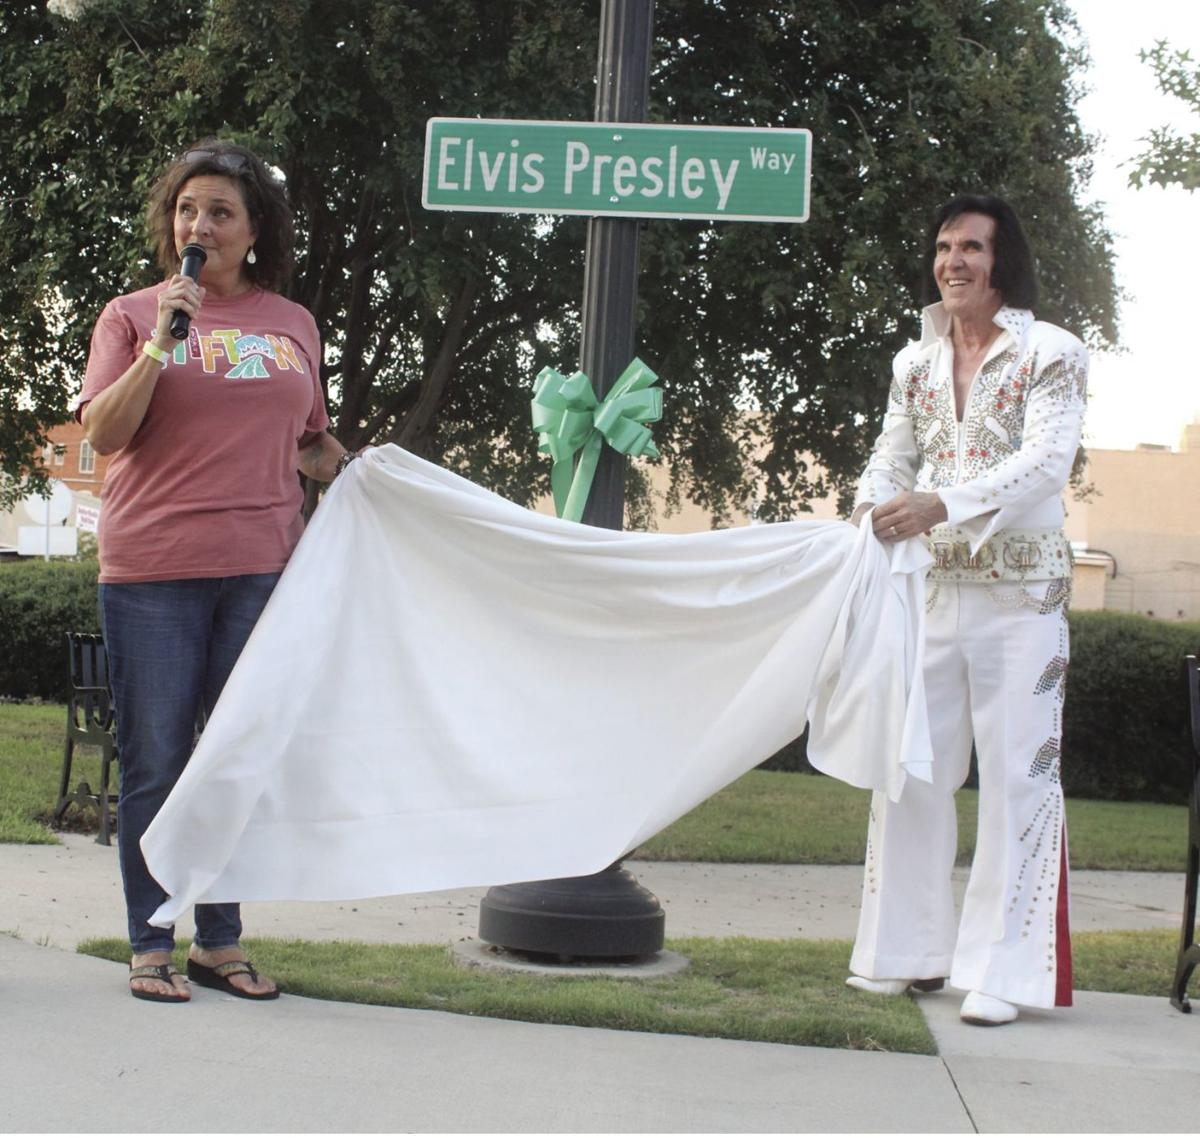 Elvis helped Tifton Mayor Julie Smith unveil a temporary street renaming at the festival.